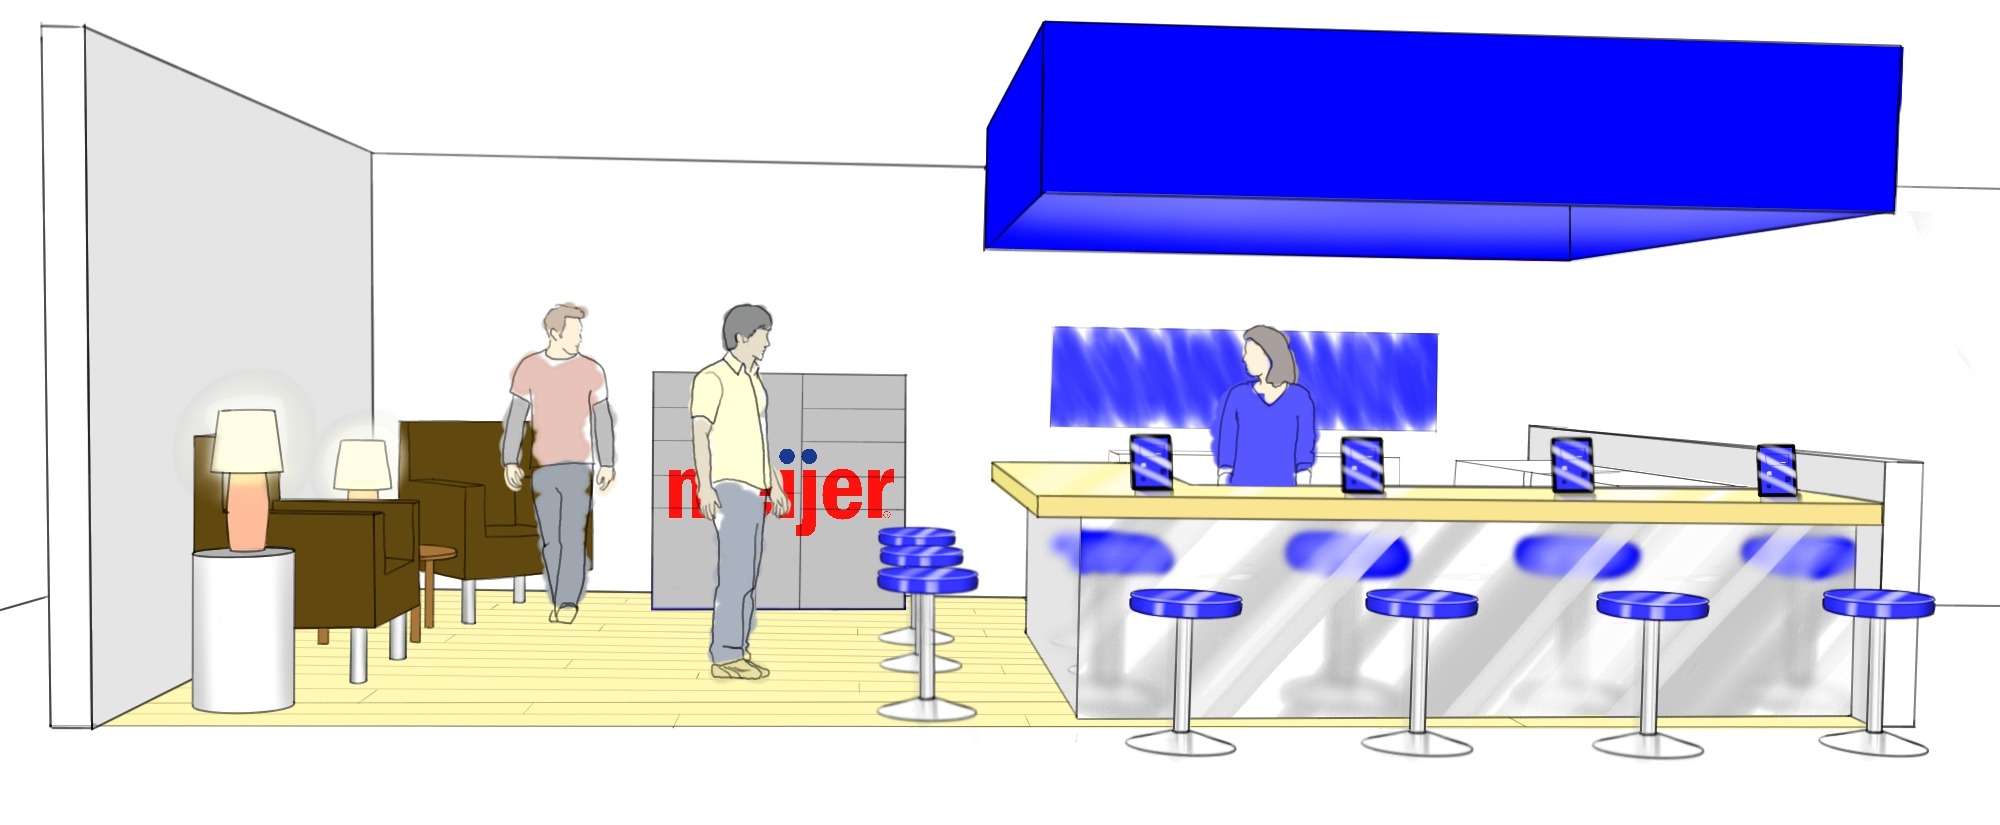 meijer photo kiosk 3D.jpg